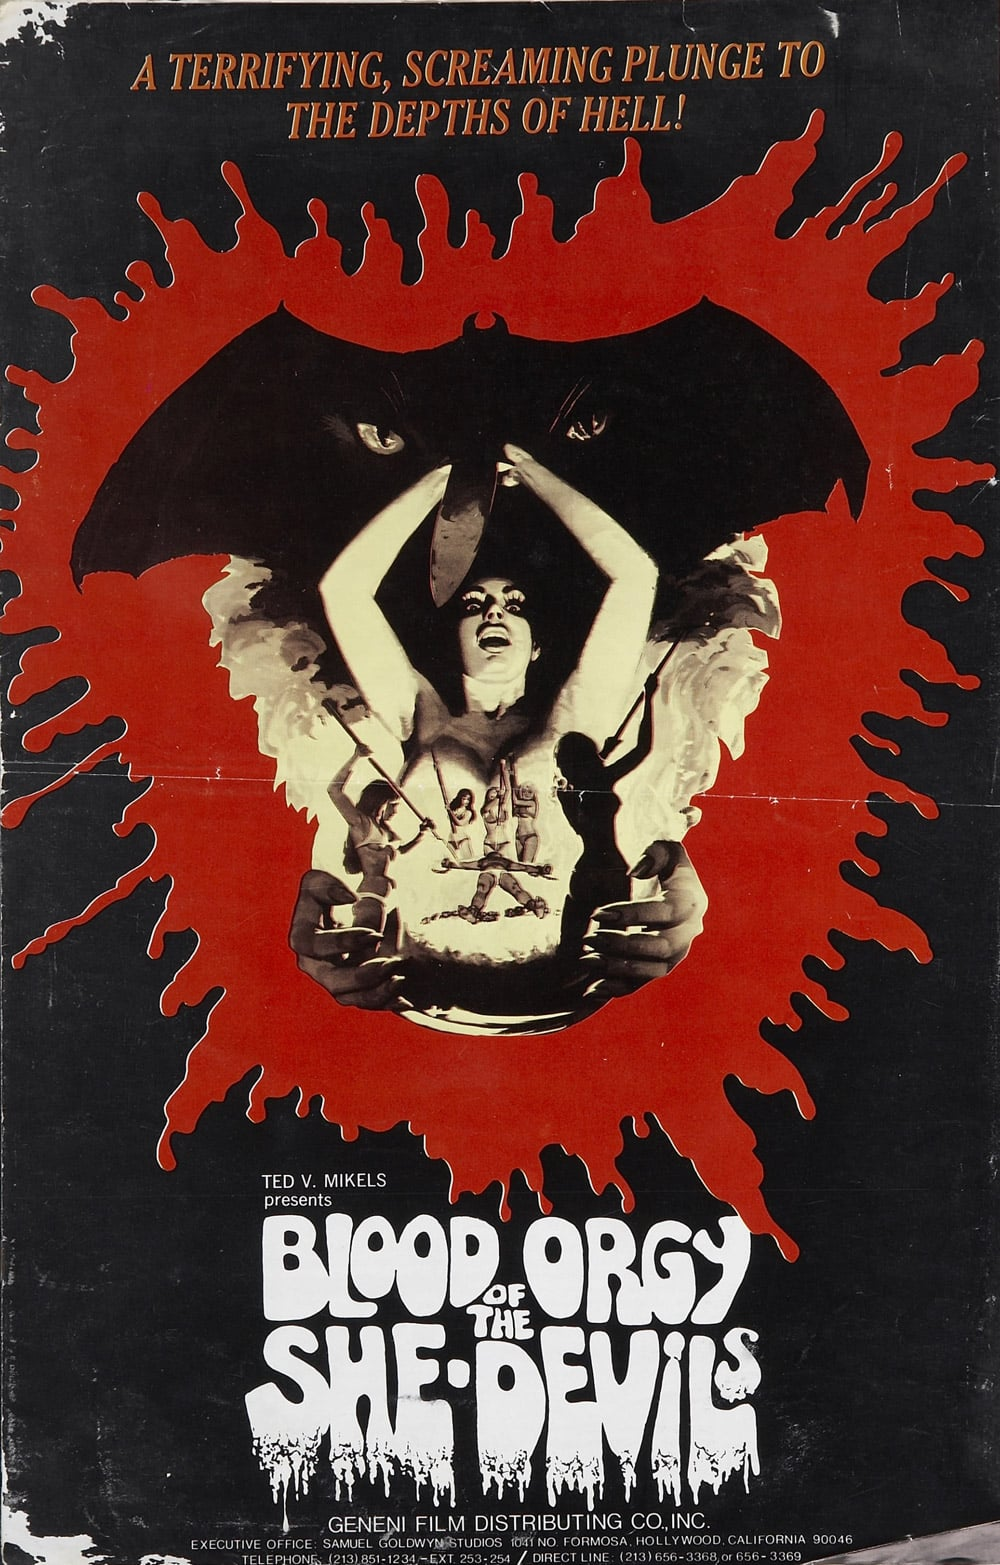 Blood-Orgy-of-the-She-Devils2